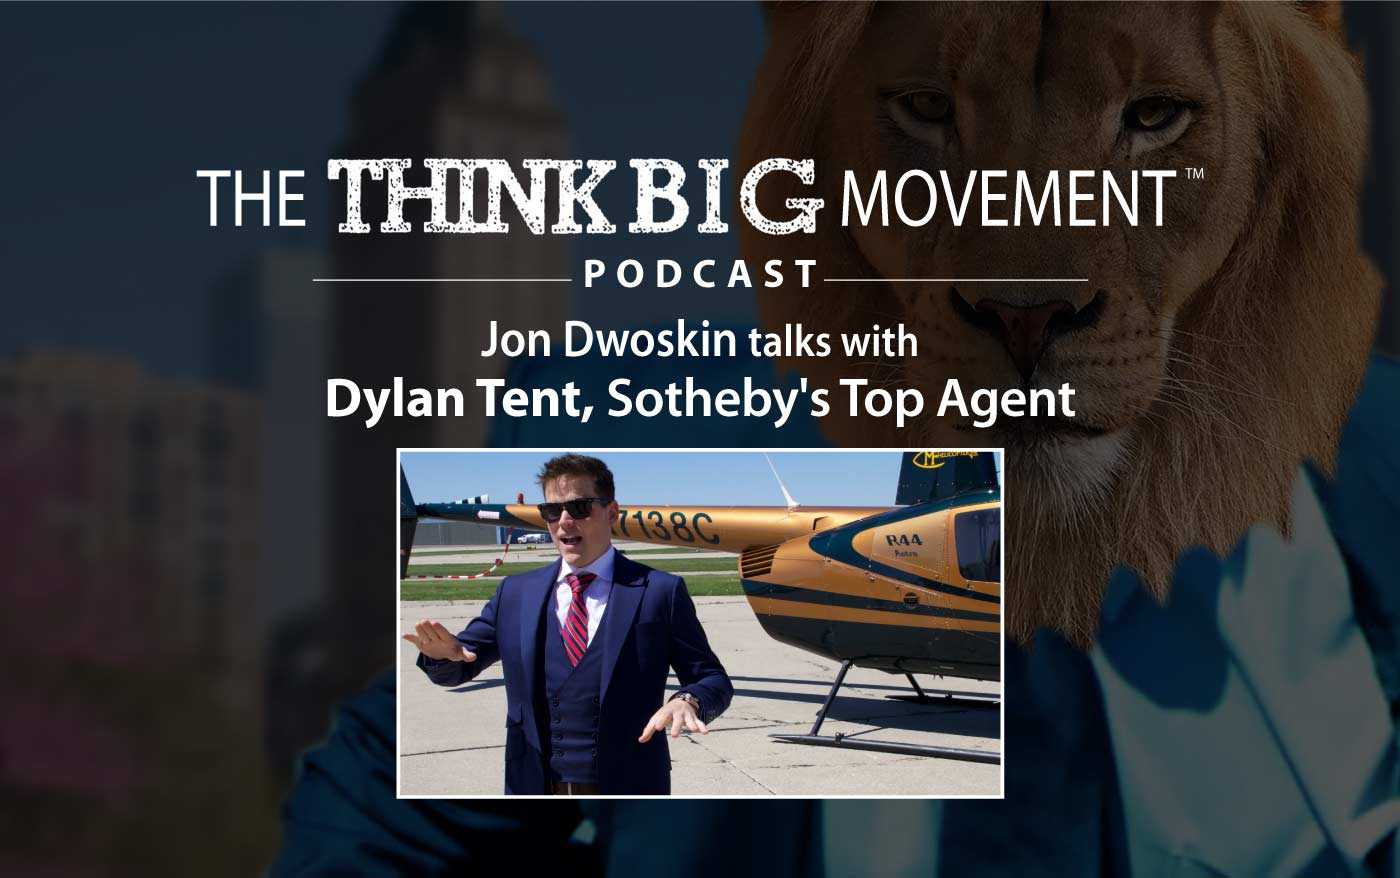 Think Big Movement Podcast - Jon Dwoskin Interviews Dylan Tent